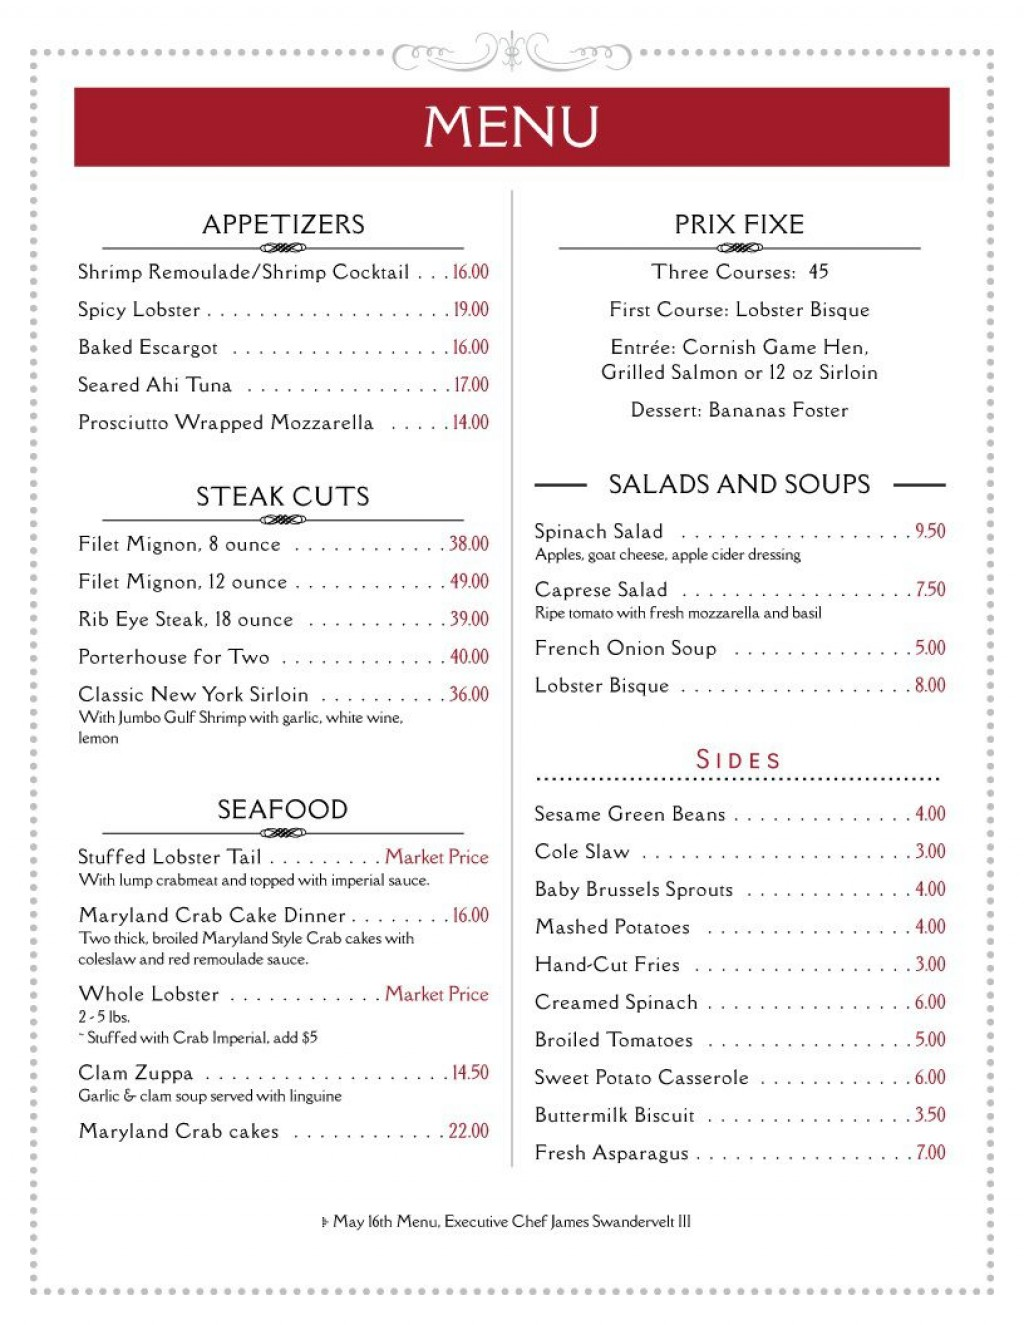 009 Stunning Free Printable Menu Template Concept  For Dinner Party FamilyLarge